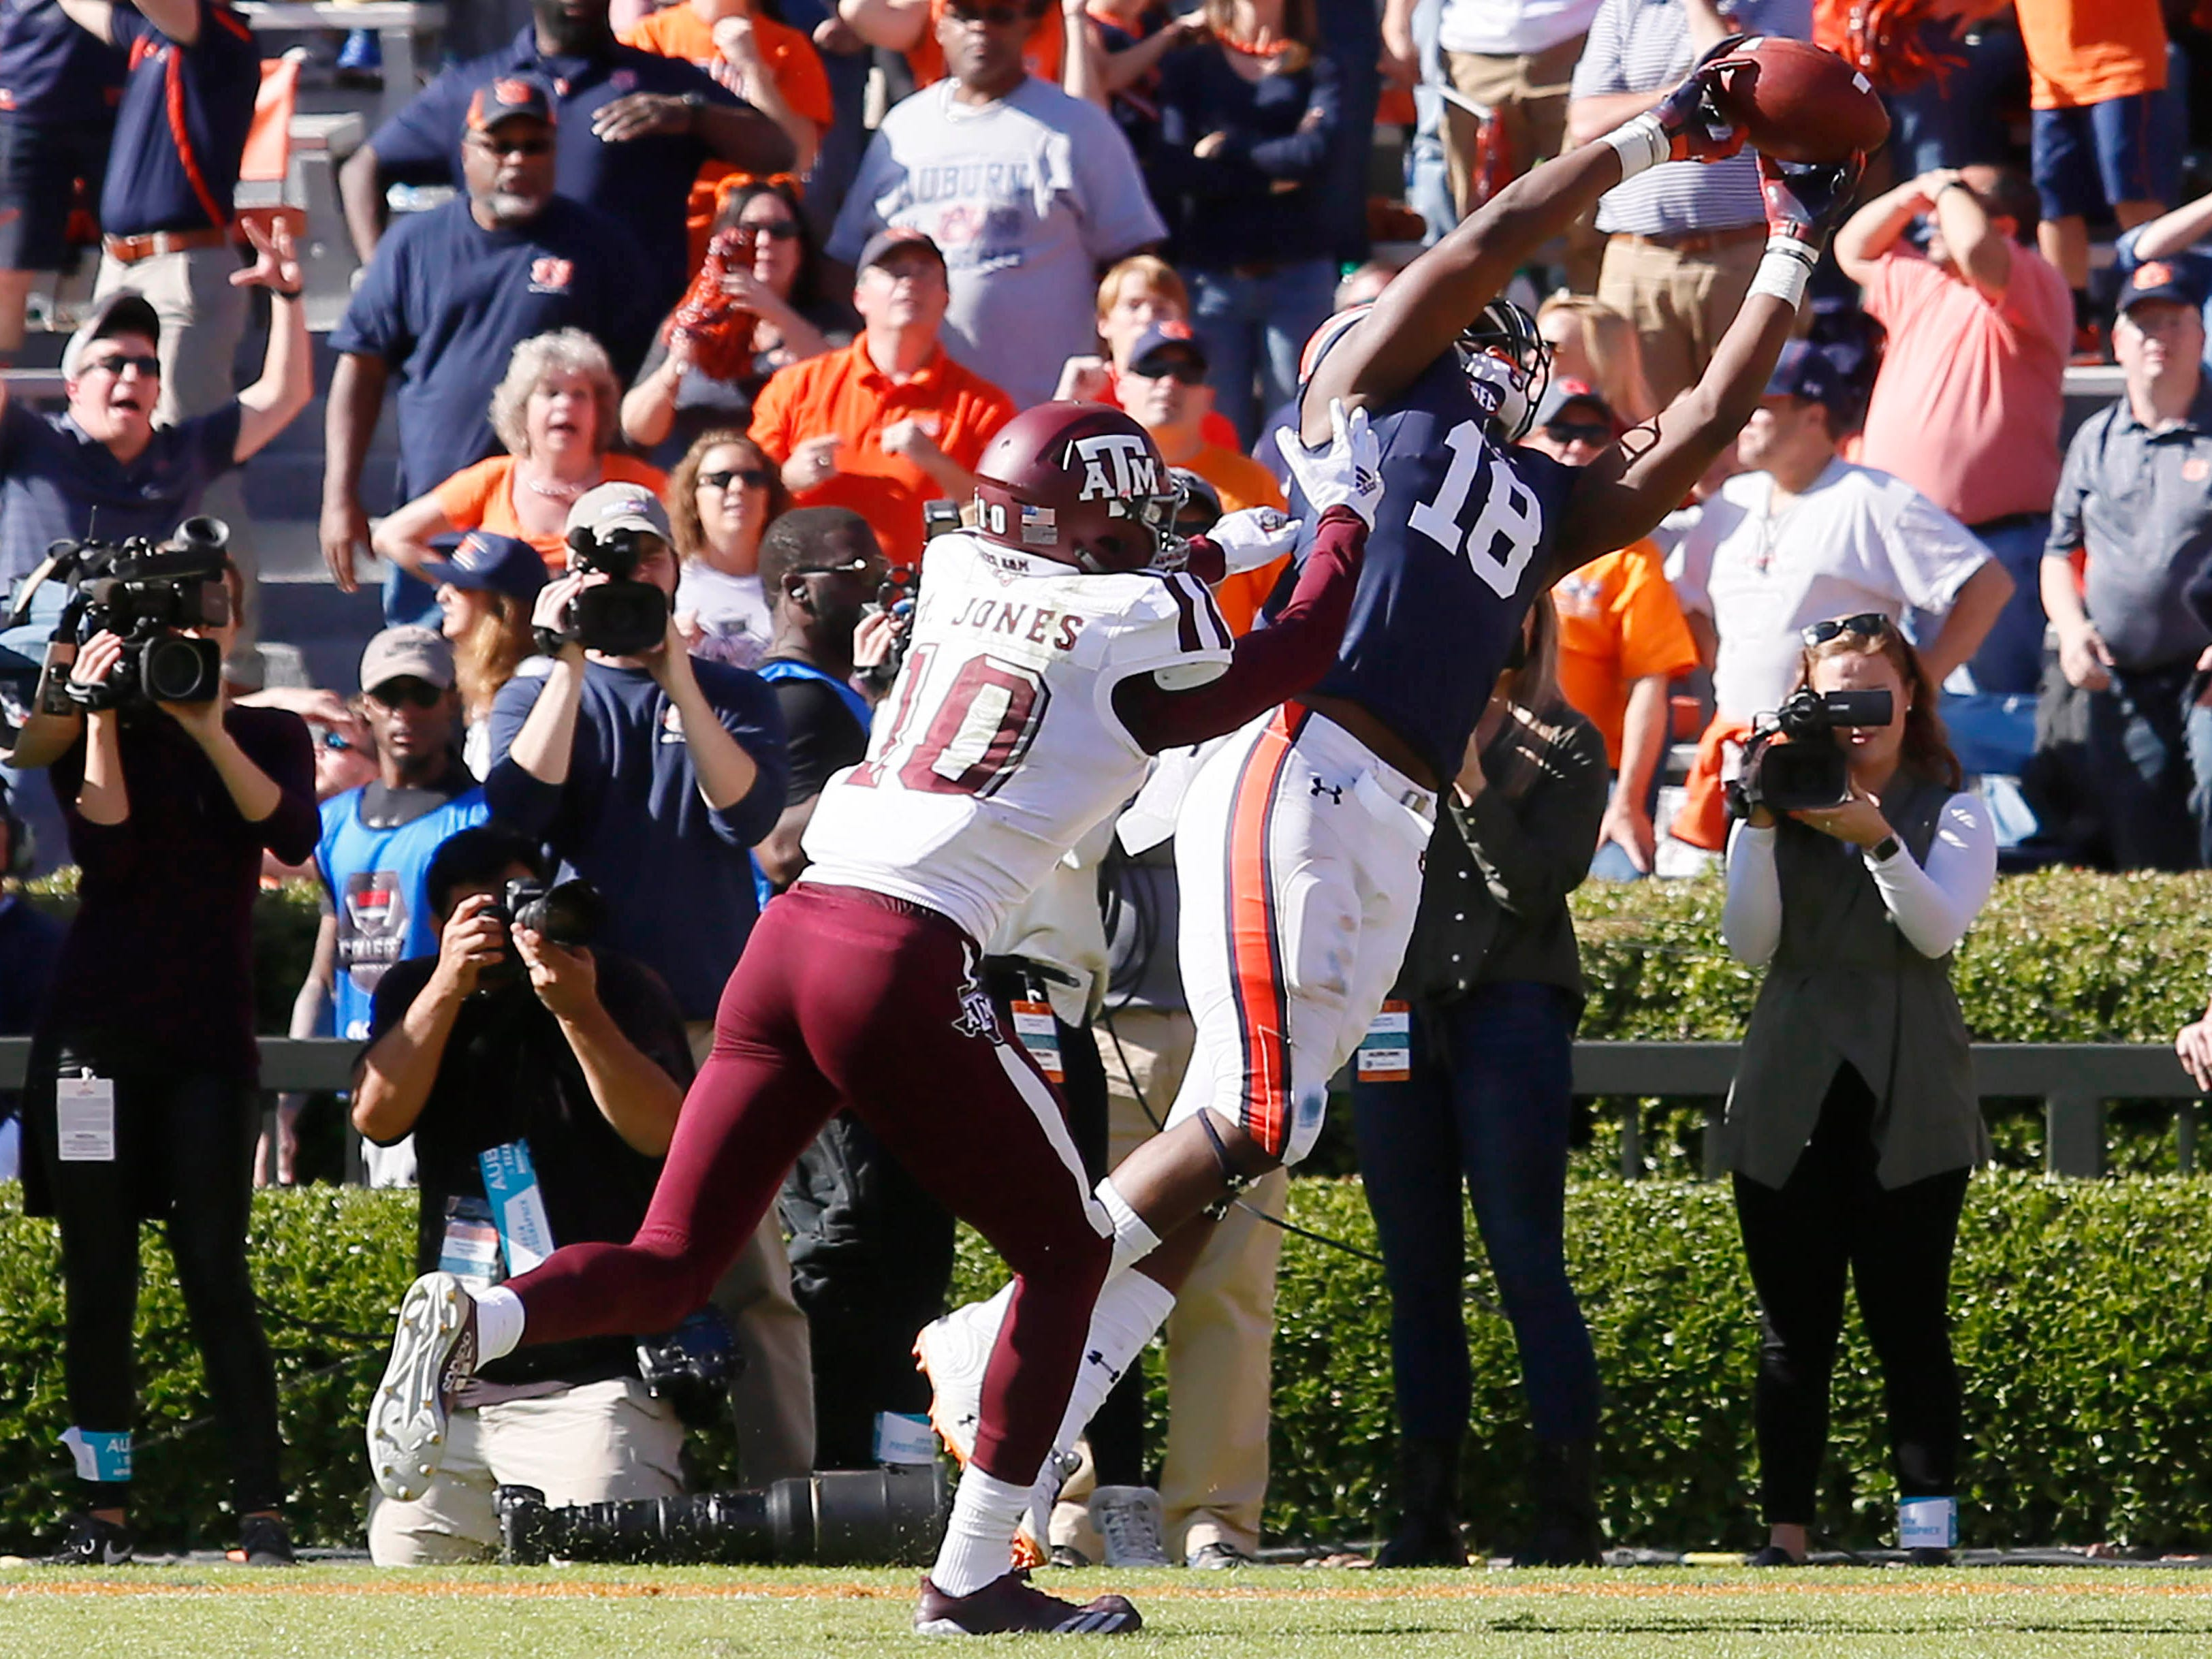 Auburn Tigers receiver Seth Williams (18) scores the go-ahead touchdown against Texas A&M during the fourth quarter at Jordan-Hare Stadium.